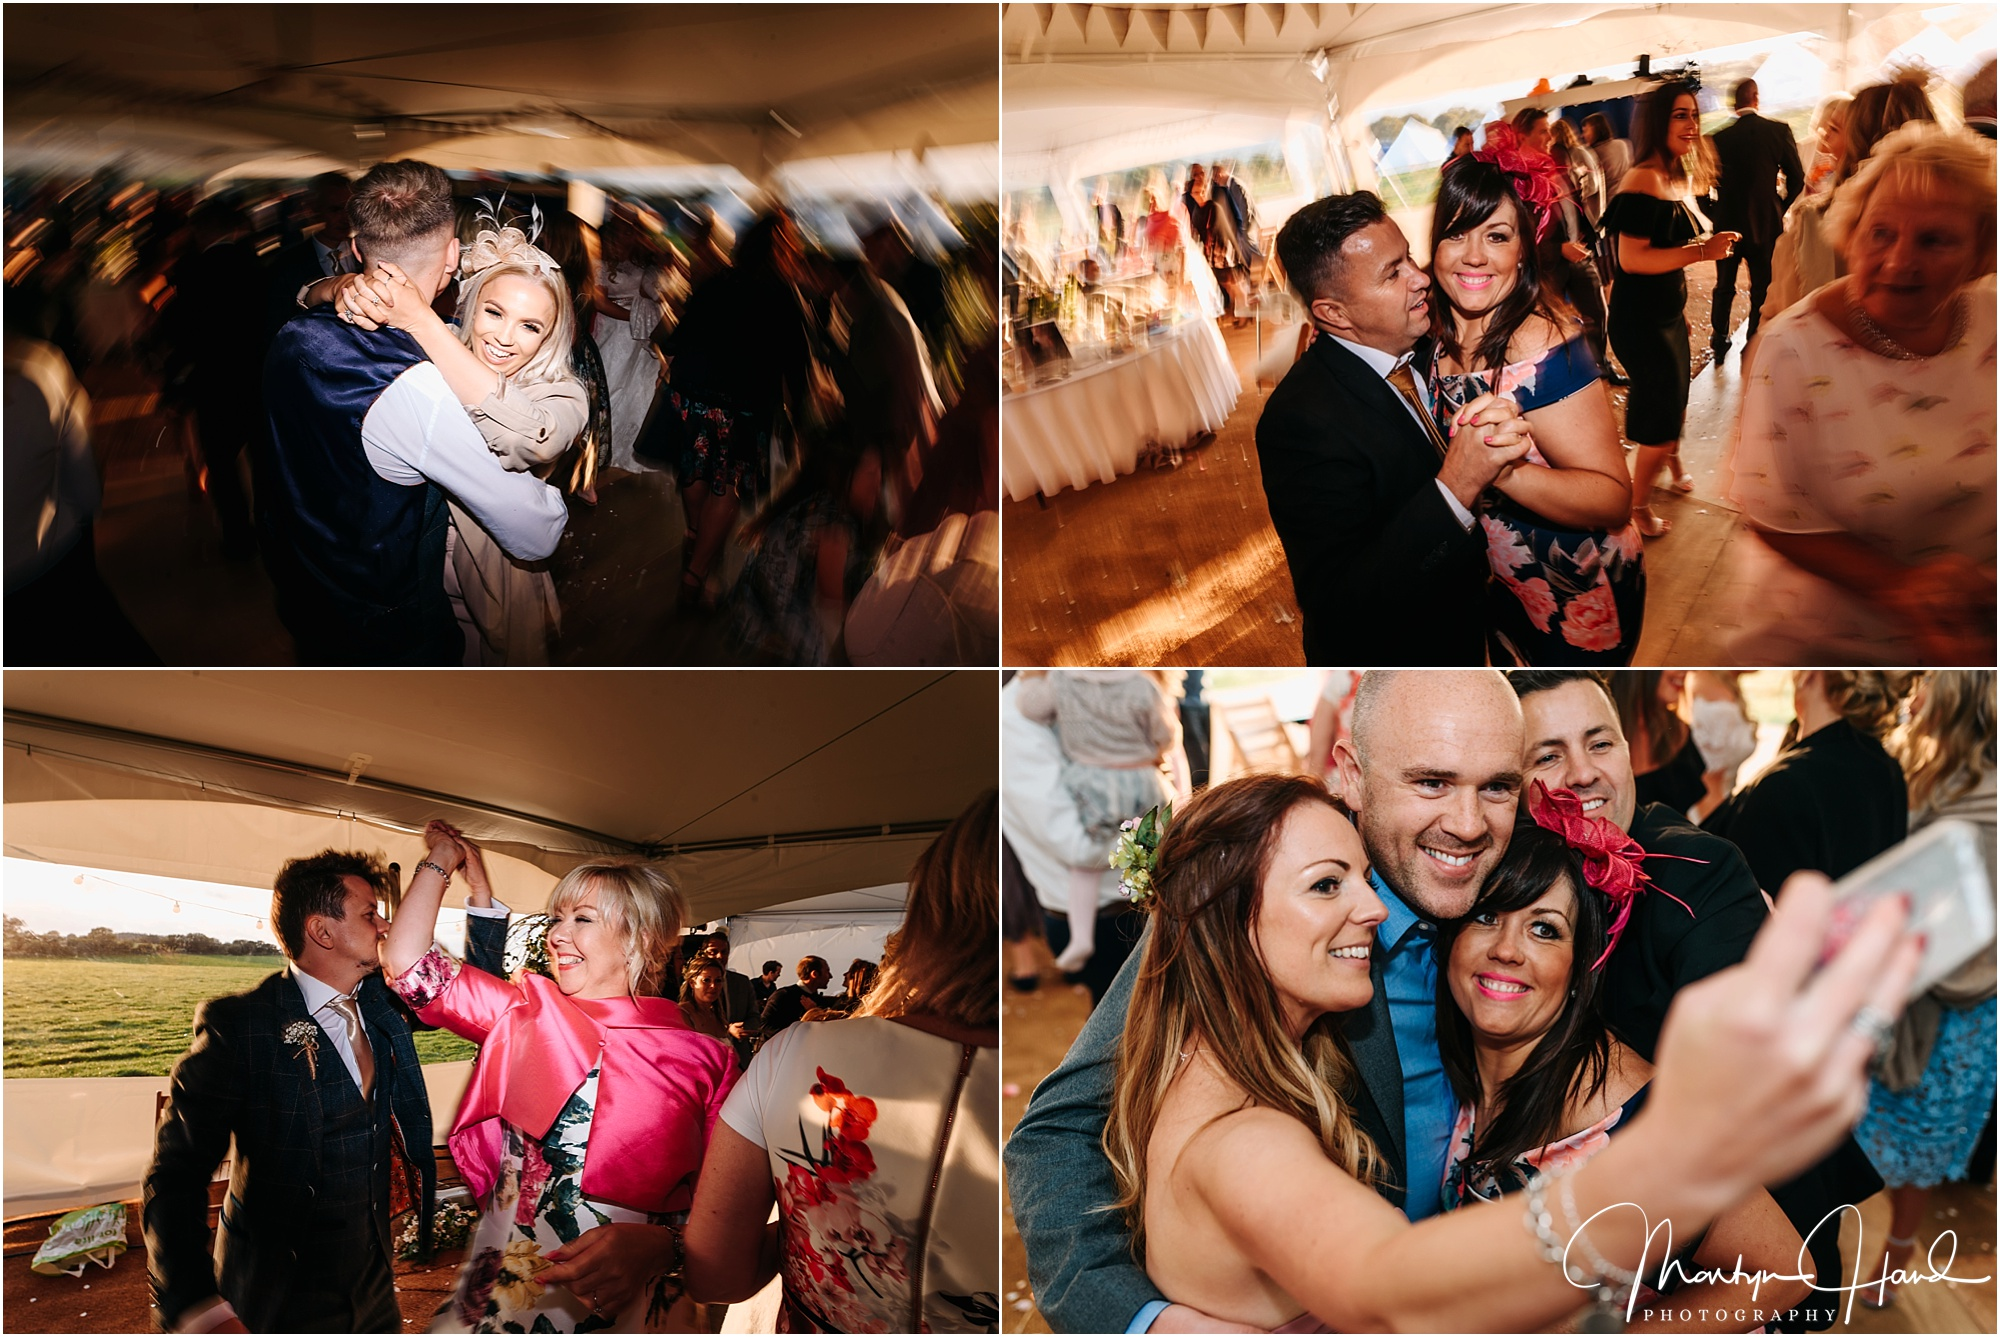 Laura & Mark Wedding Highlights-75.jpg